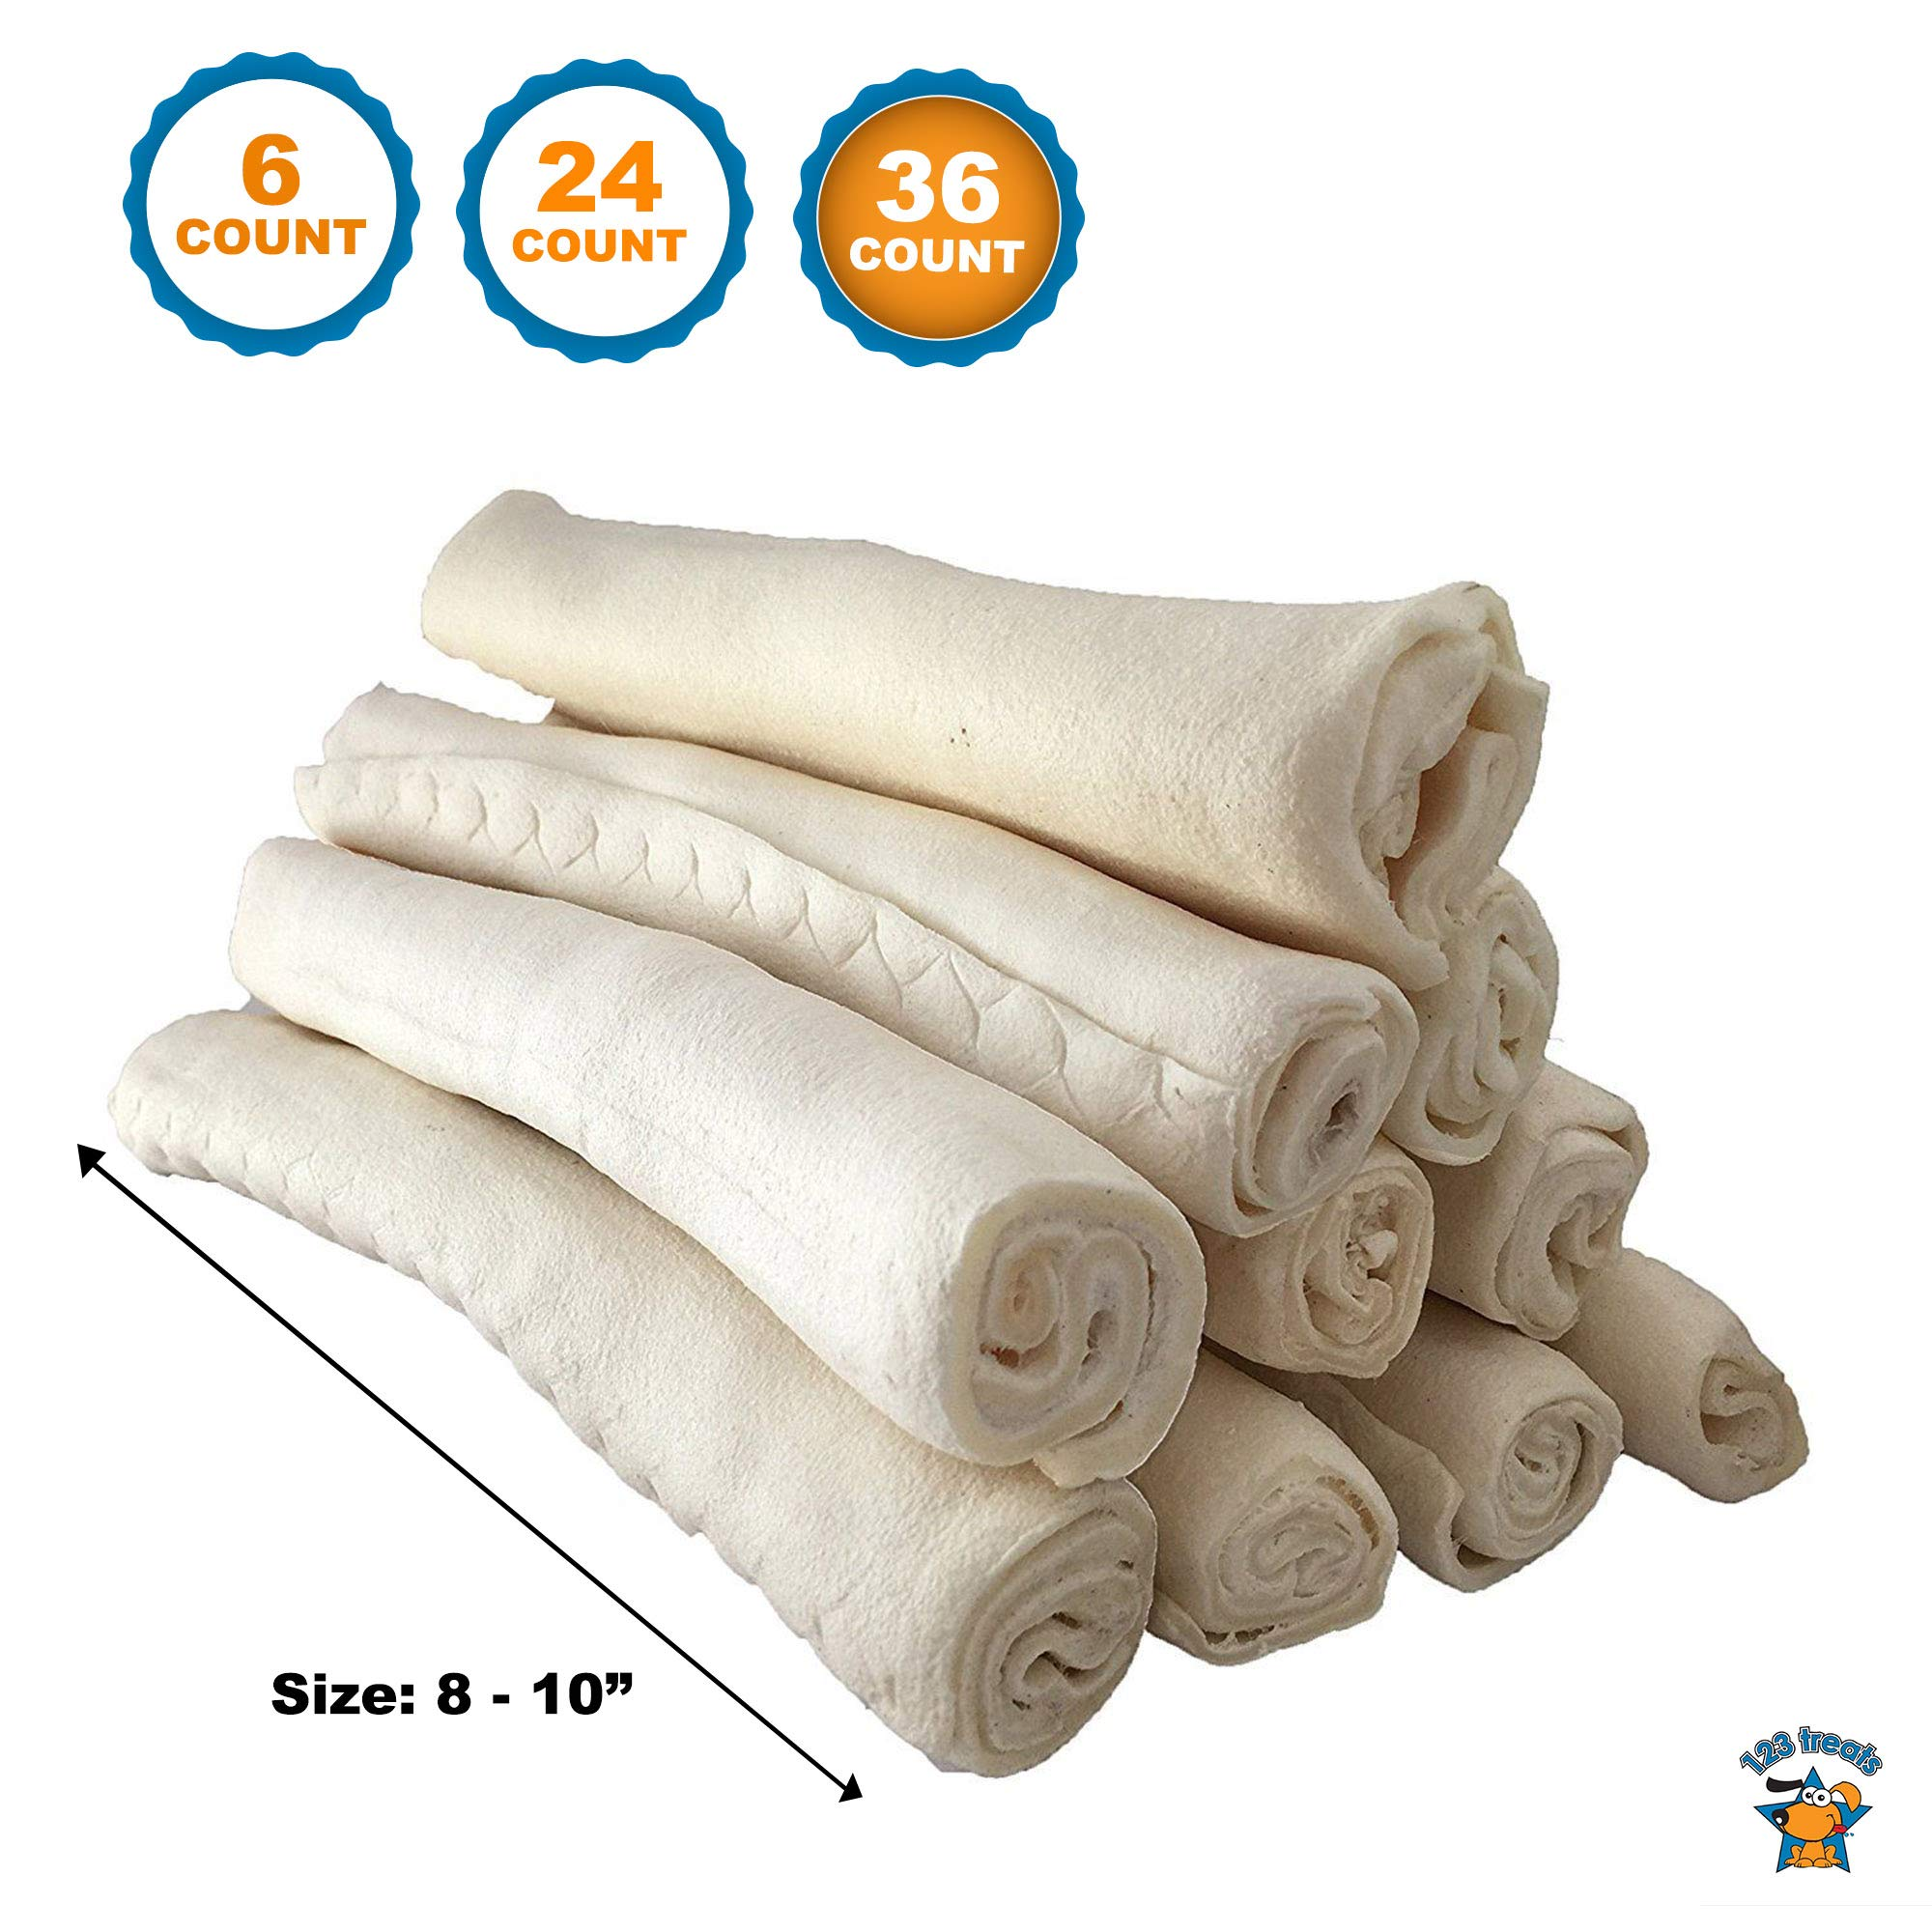 "123 Treats - Premium Rawhide Retriever Rolls For Dogs 8-9"" (36 Count) All-Natural Grass-Fed Free-Range Hand Rolled Beef Dog Bones High-Protein Healthy Chew Treats To Improve Pet Dental Hygiene by 123 Treats (Image #1)"